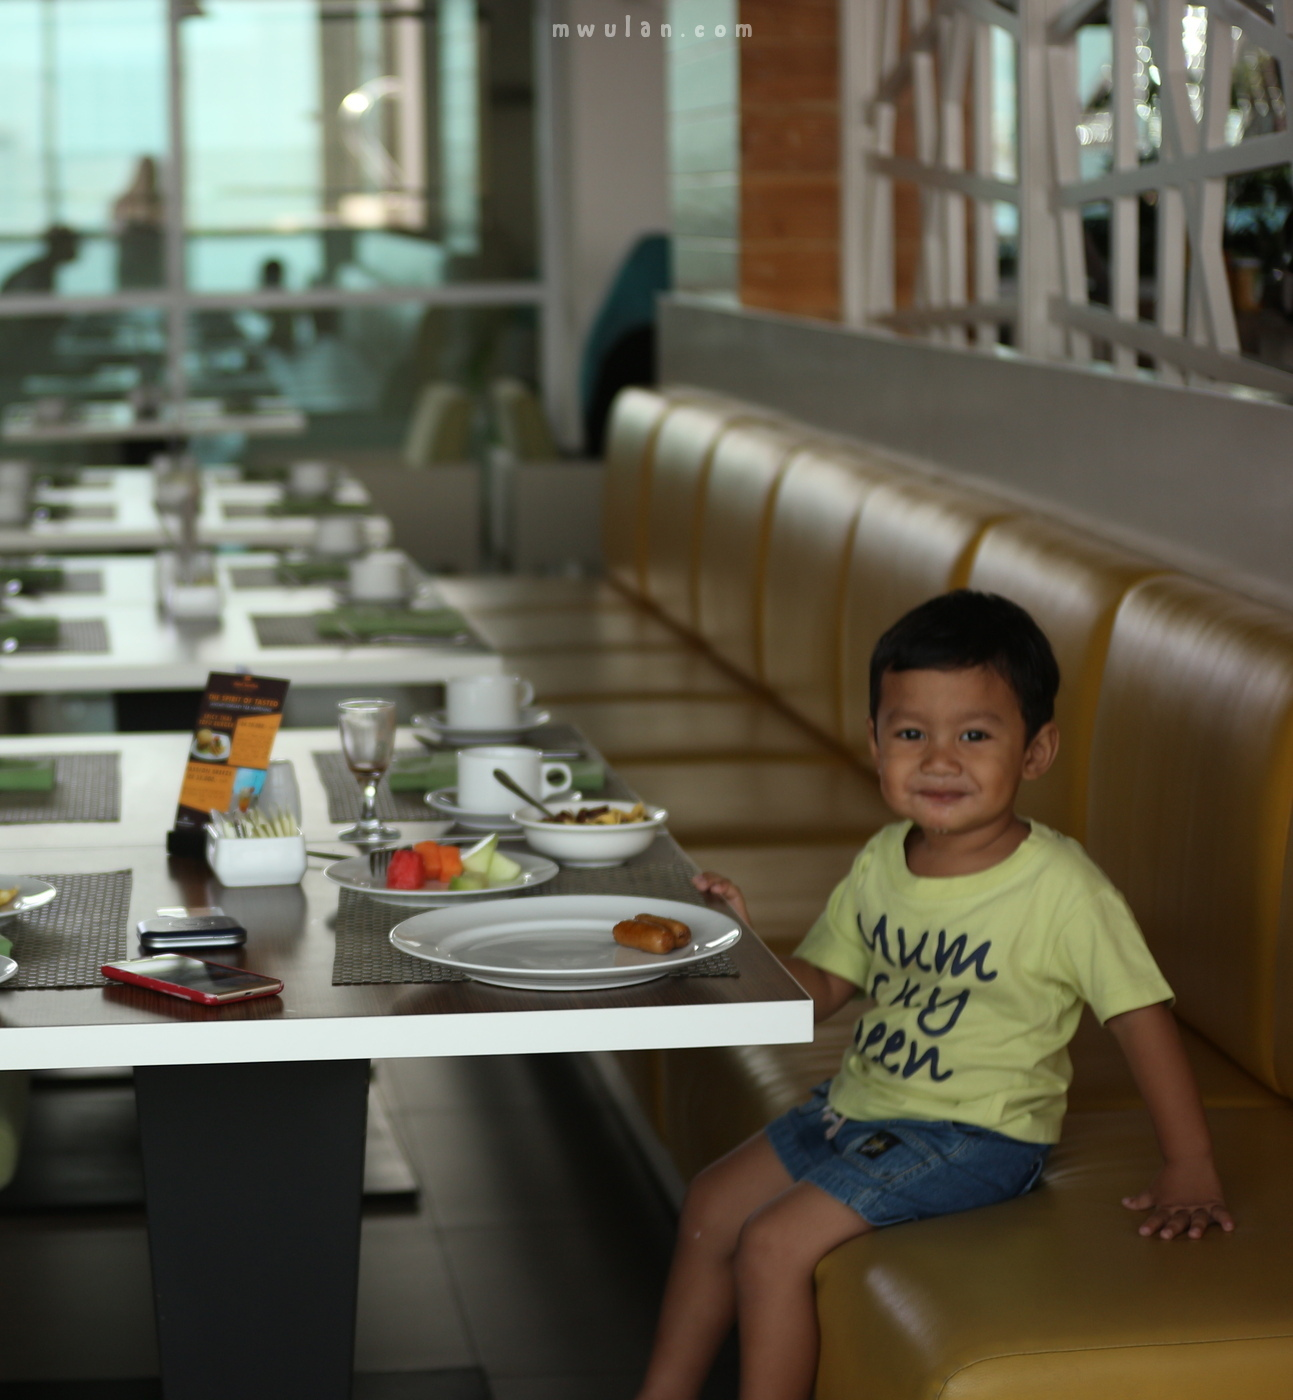 Don't you see the happy baby in the restaurant ? :)